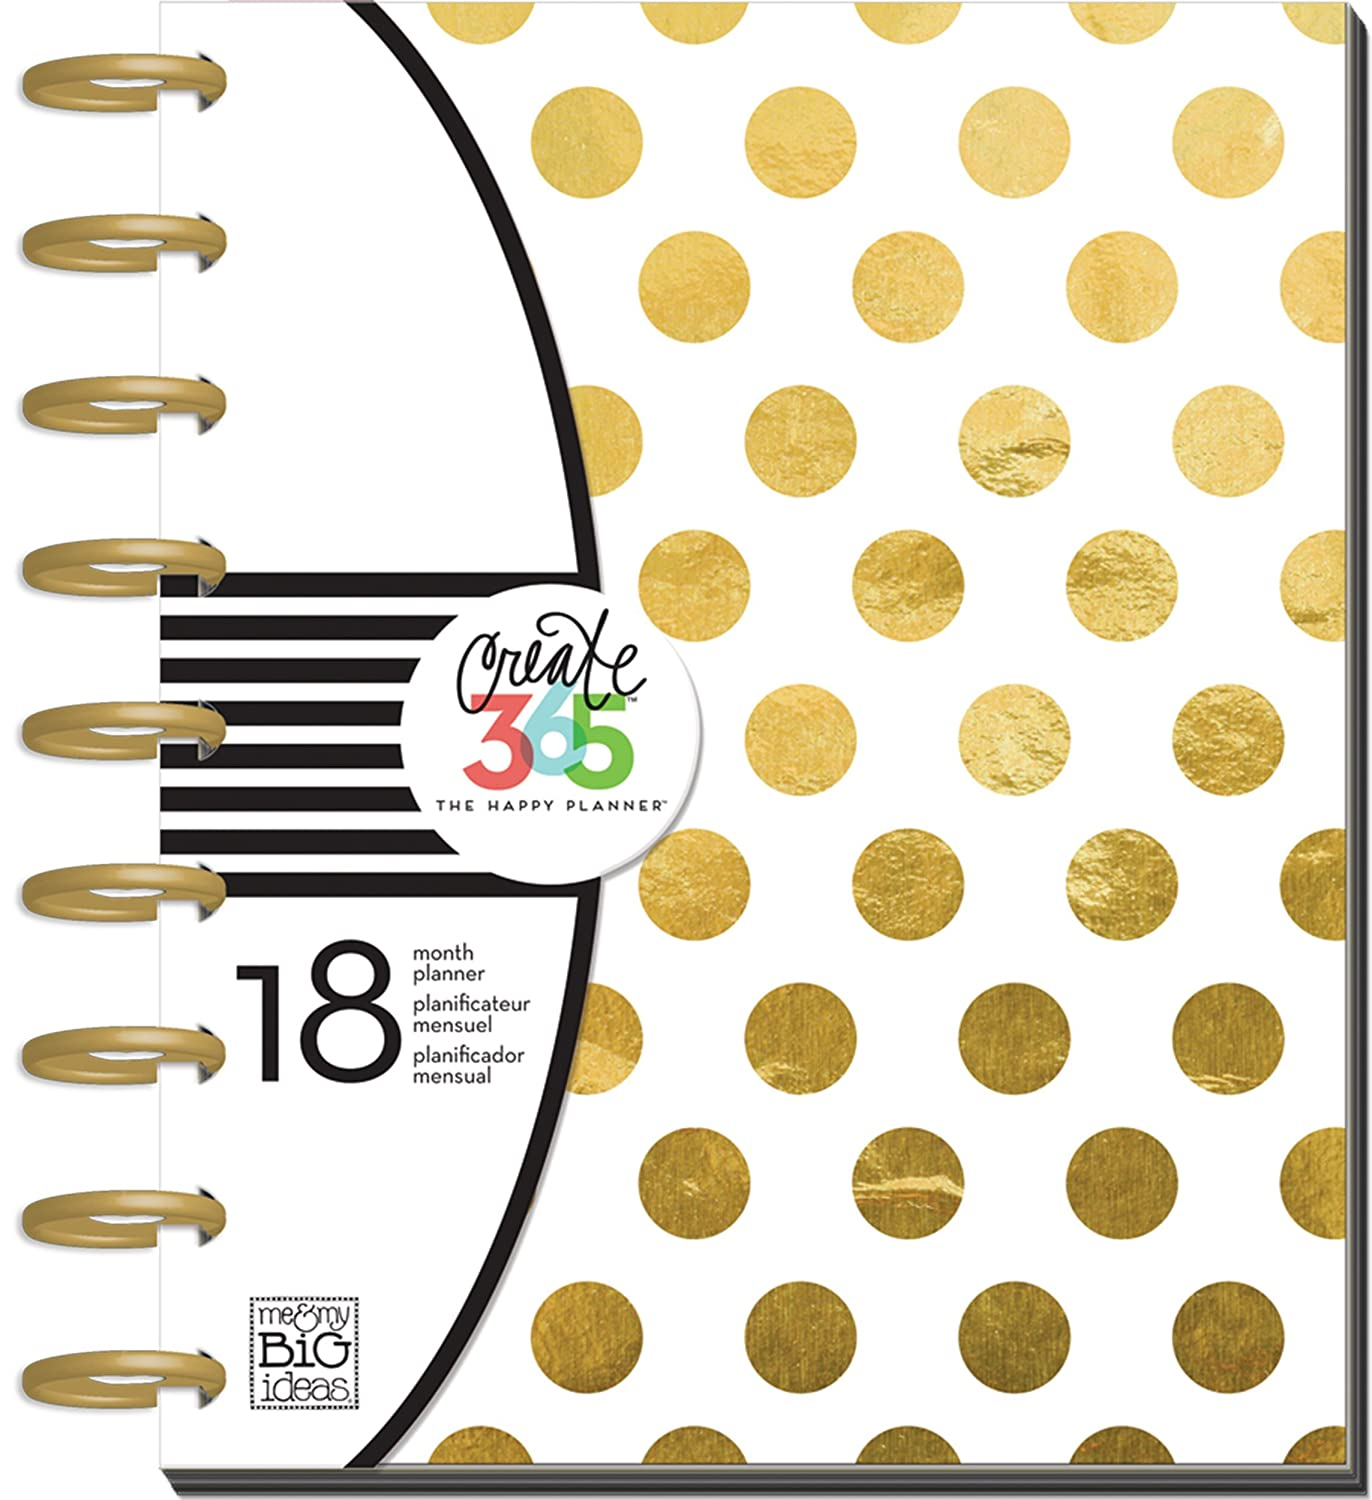 Me and My Big Ideas Create 365 18-Month Planner 7.75-inch x 9.75-inch-Botanical Garden Me & My Big Ideas 290480